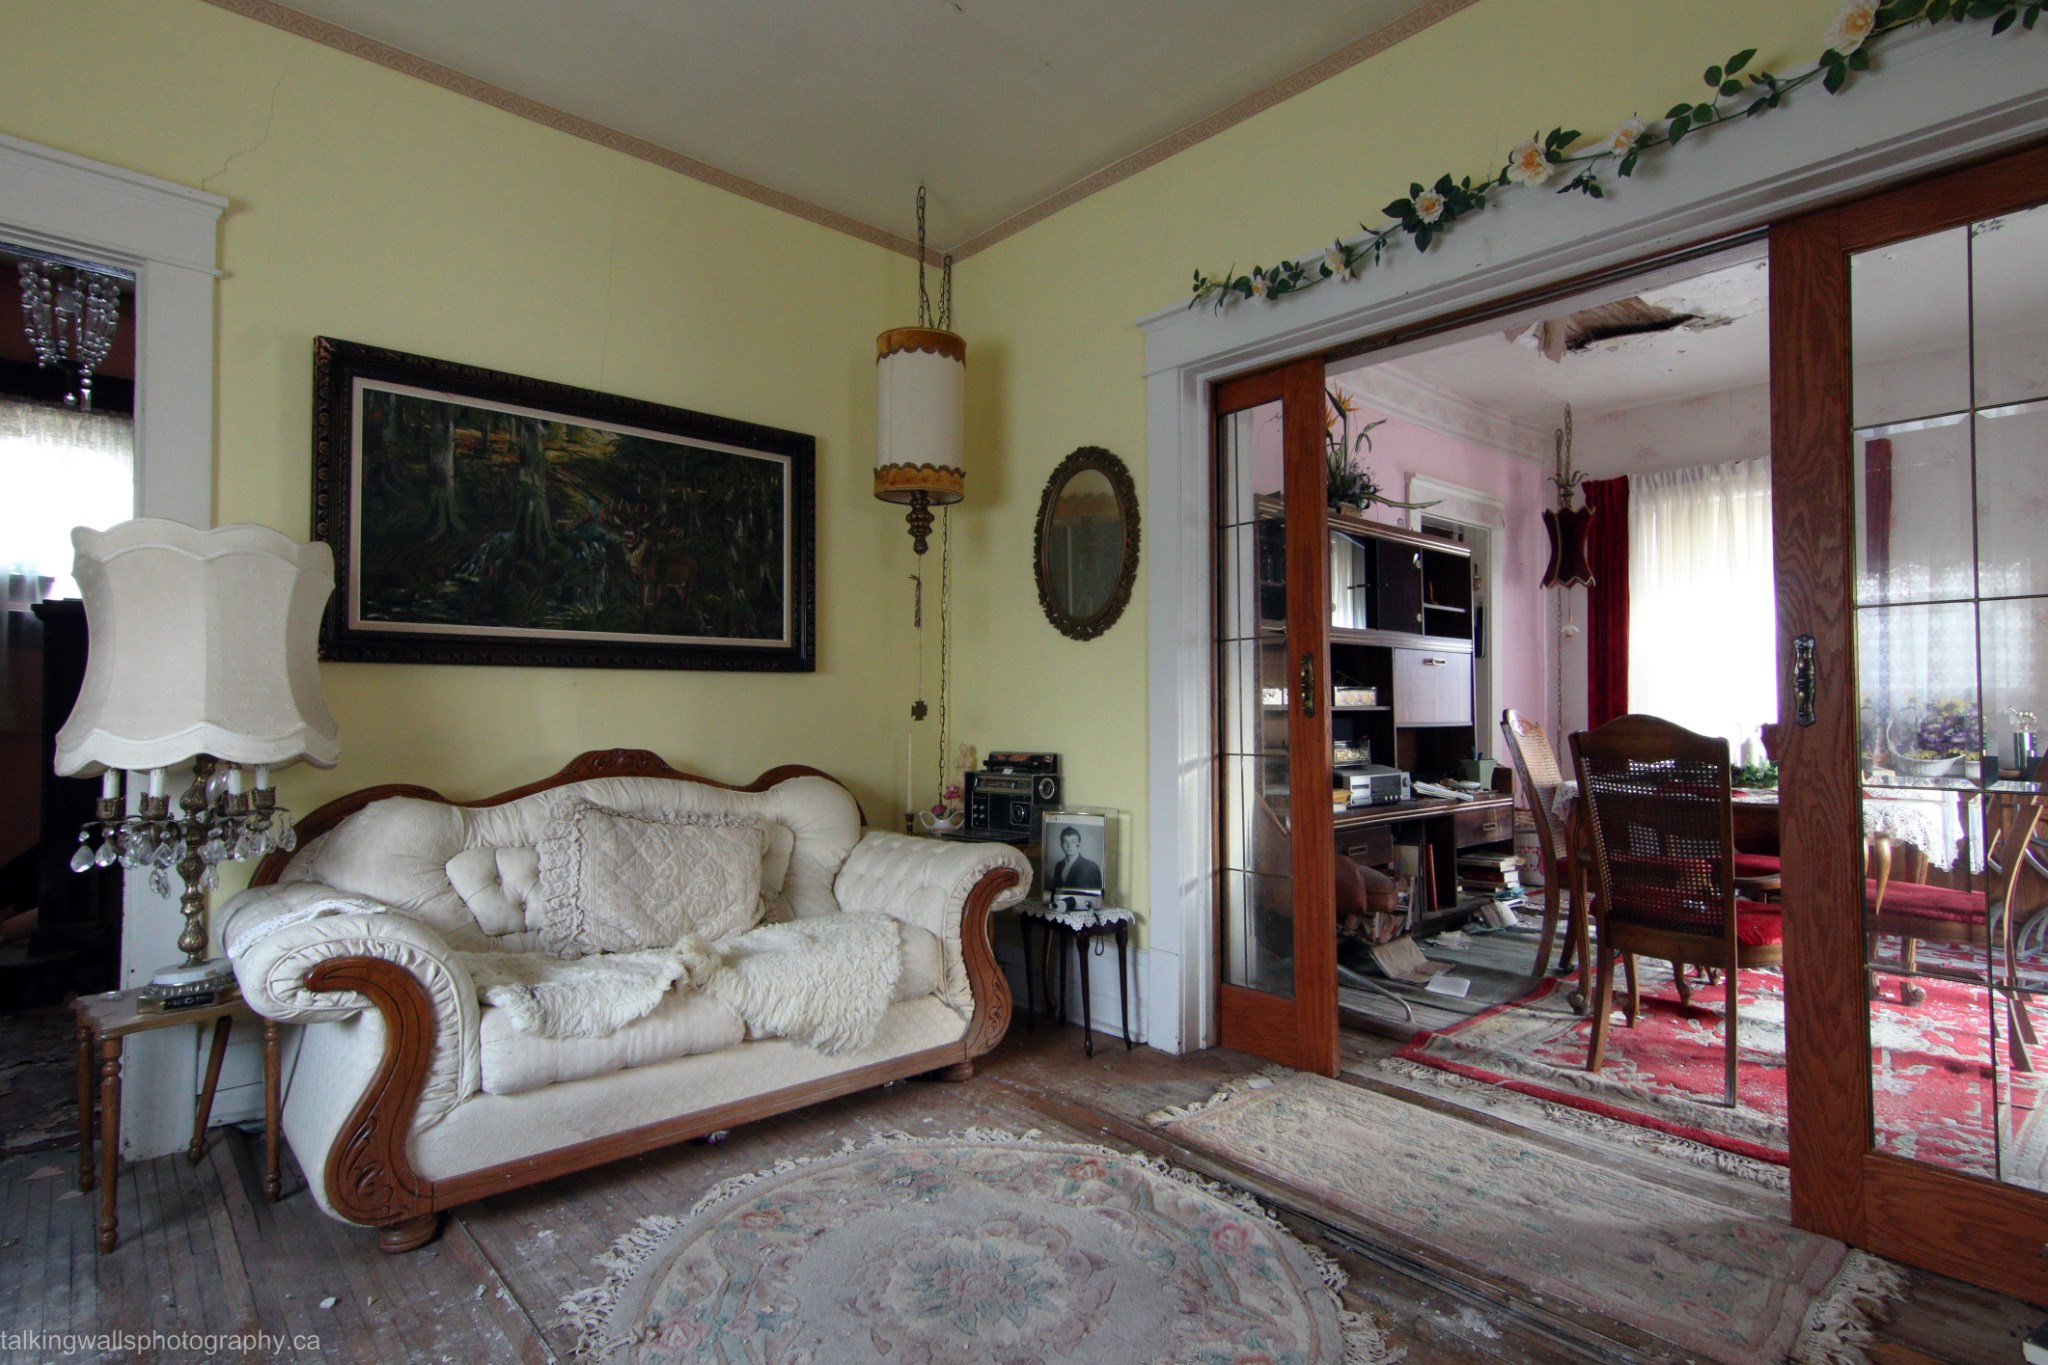 abandoned bed and breakfast time capsule